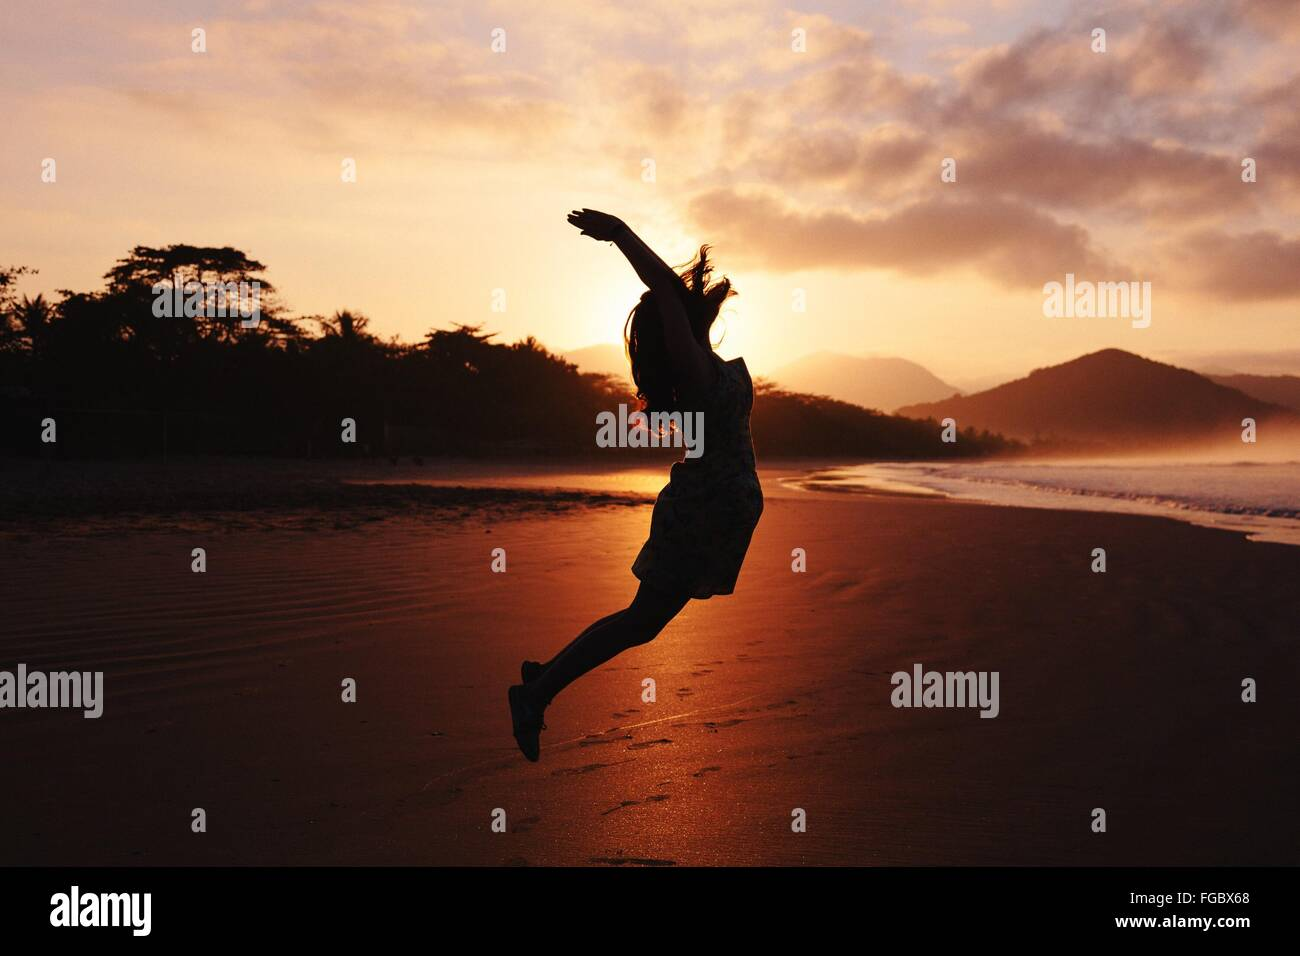 Side View Of Silhouette Woman With Arms Raised Jumping At Beach - Stock Image